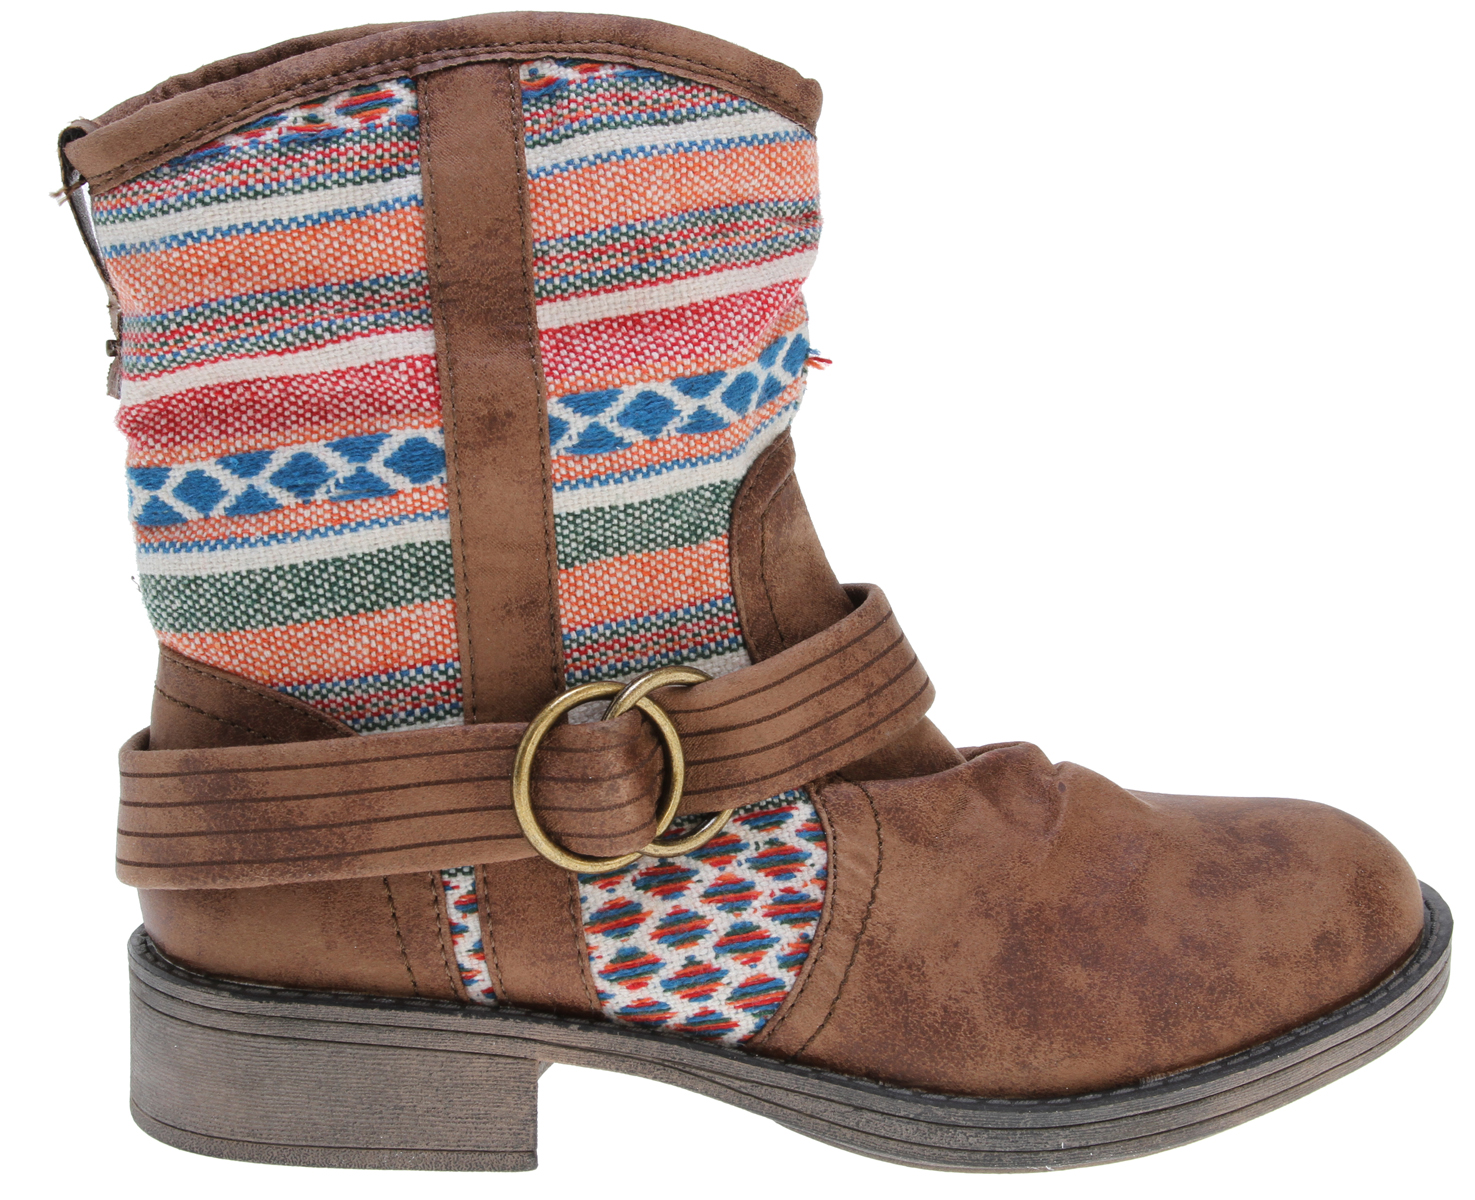 Surf Key Features of the Roxy Dillon Boots: weathered faux suede boot with textile shaft and buckle detail faux suede ROXY pull tab with metal stud inside zip canvas upper lining canvas footbed lining with padded insole flexible TPR unit bottom boxed - $54.95